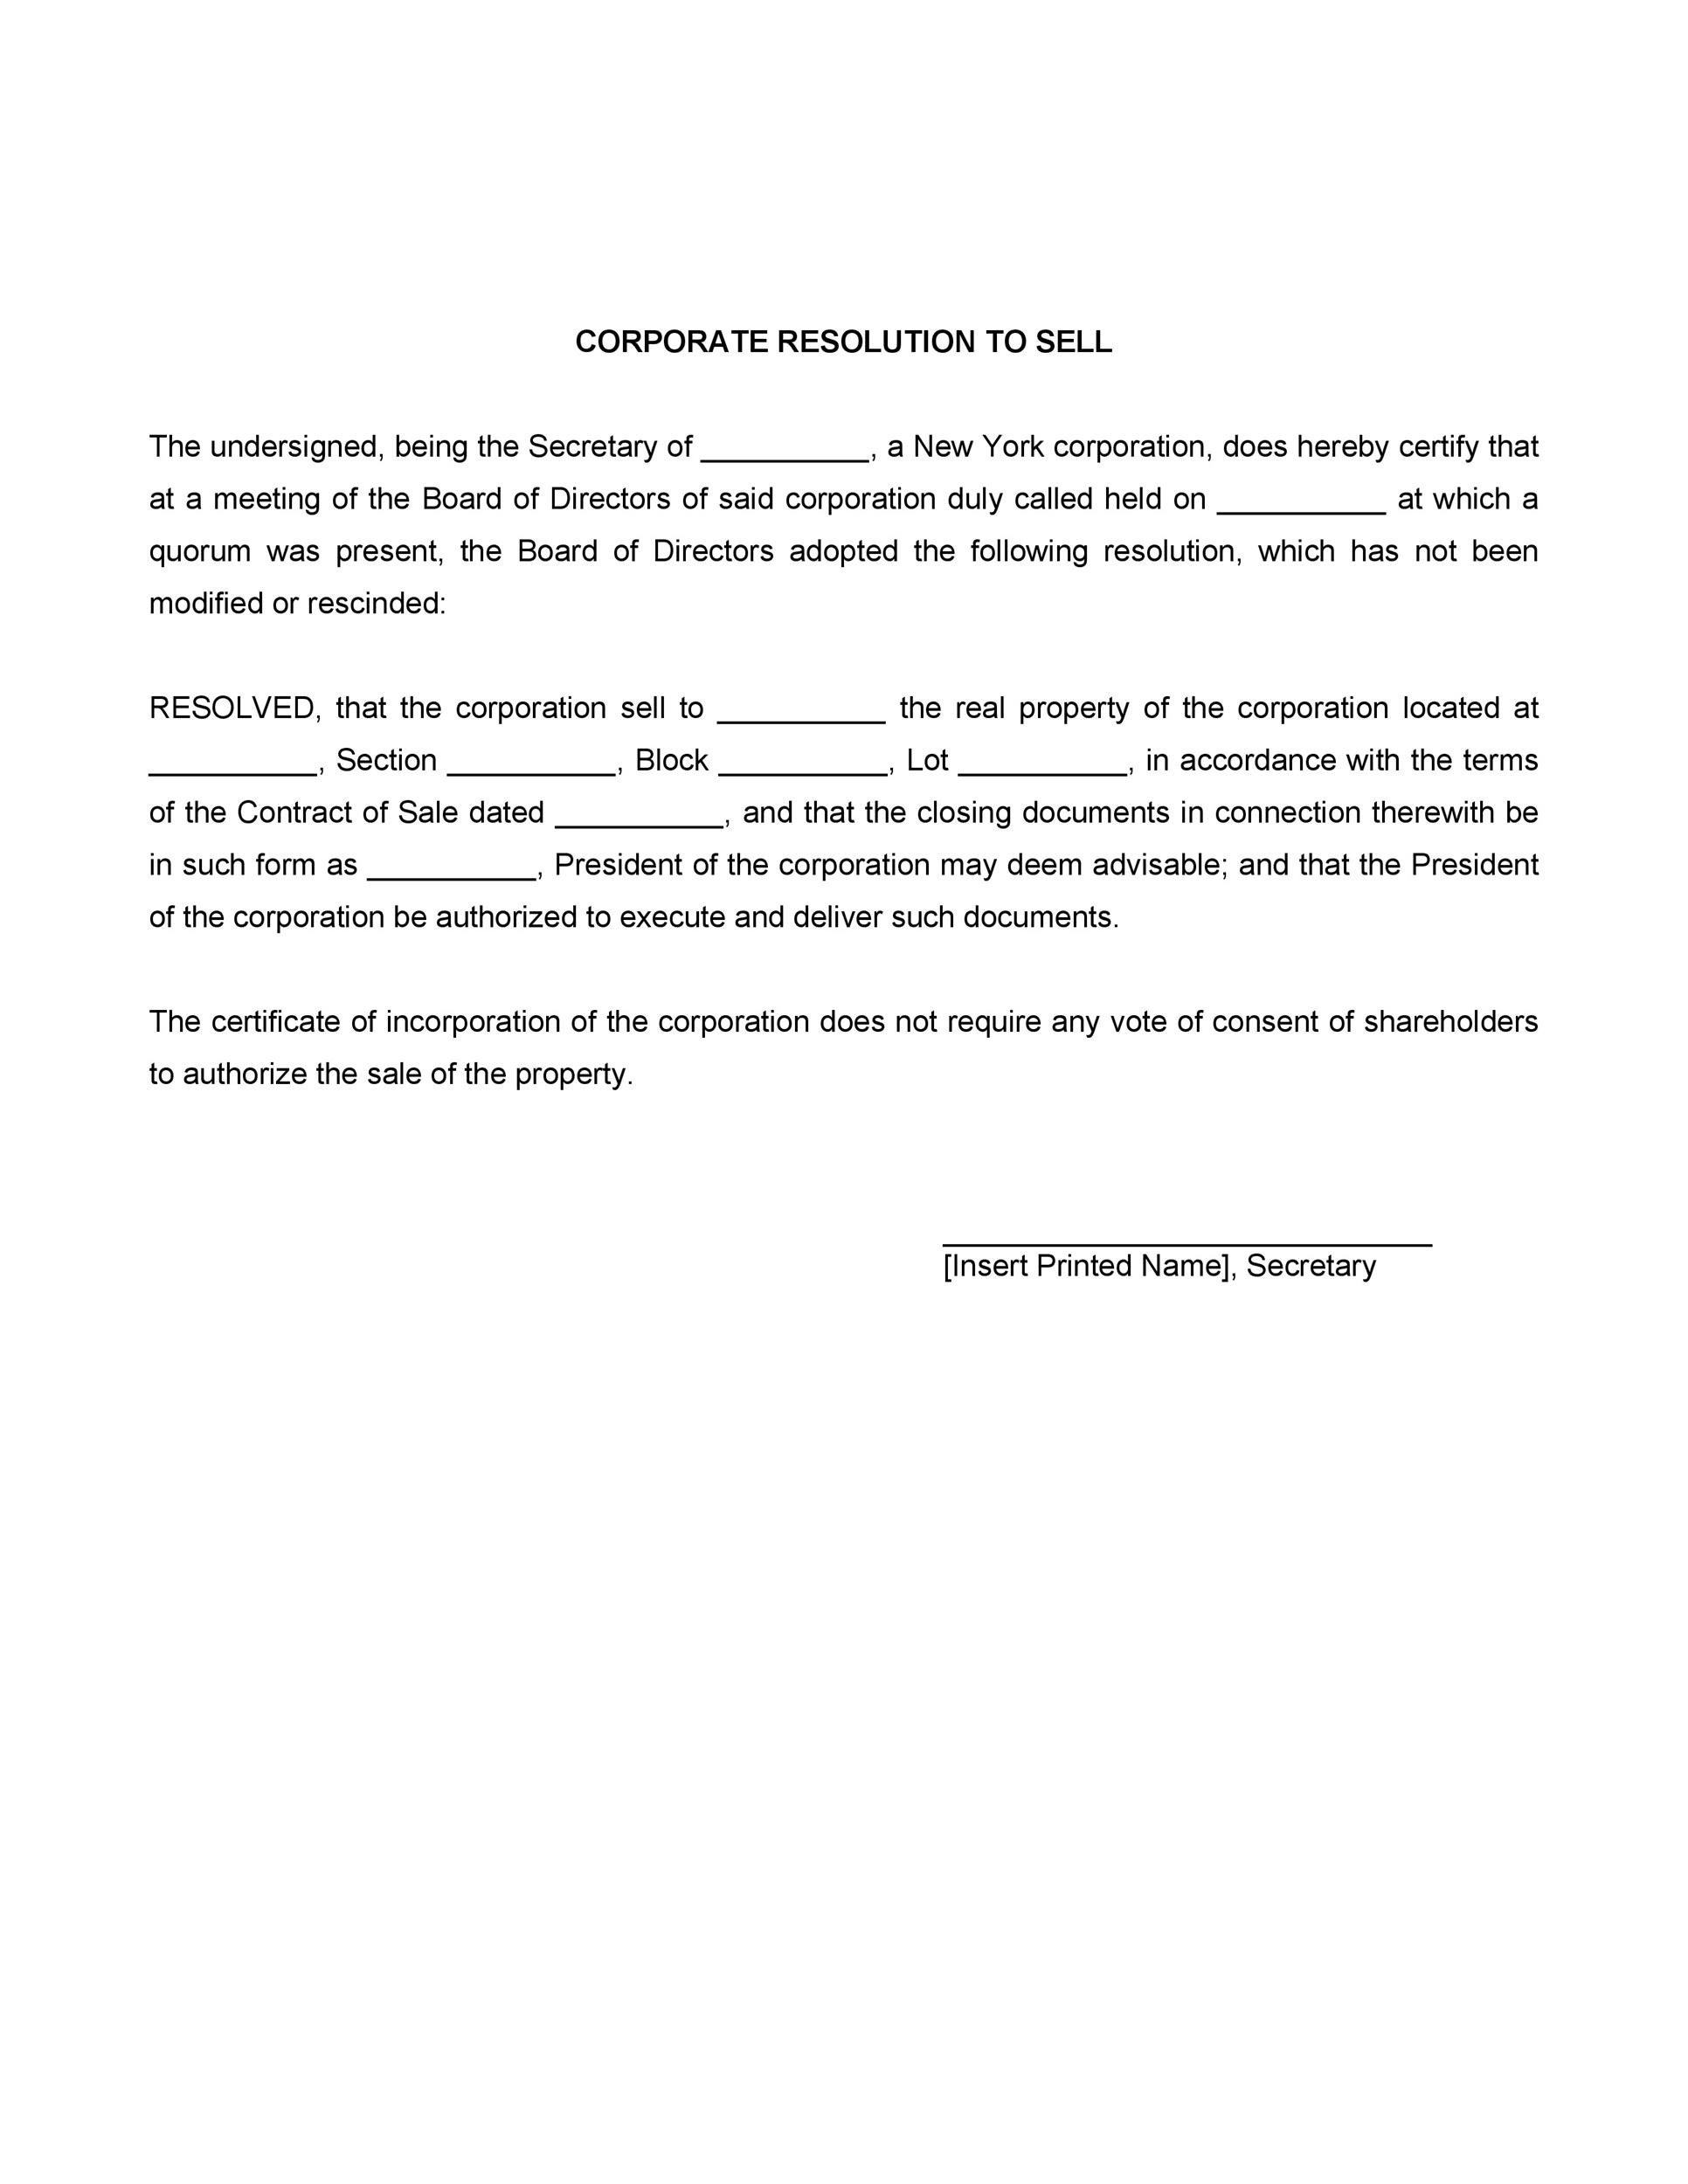 Corporate Resolution Template from templatelab.com